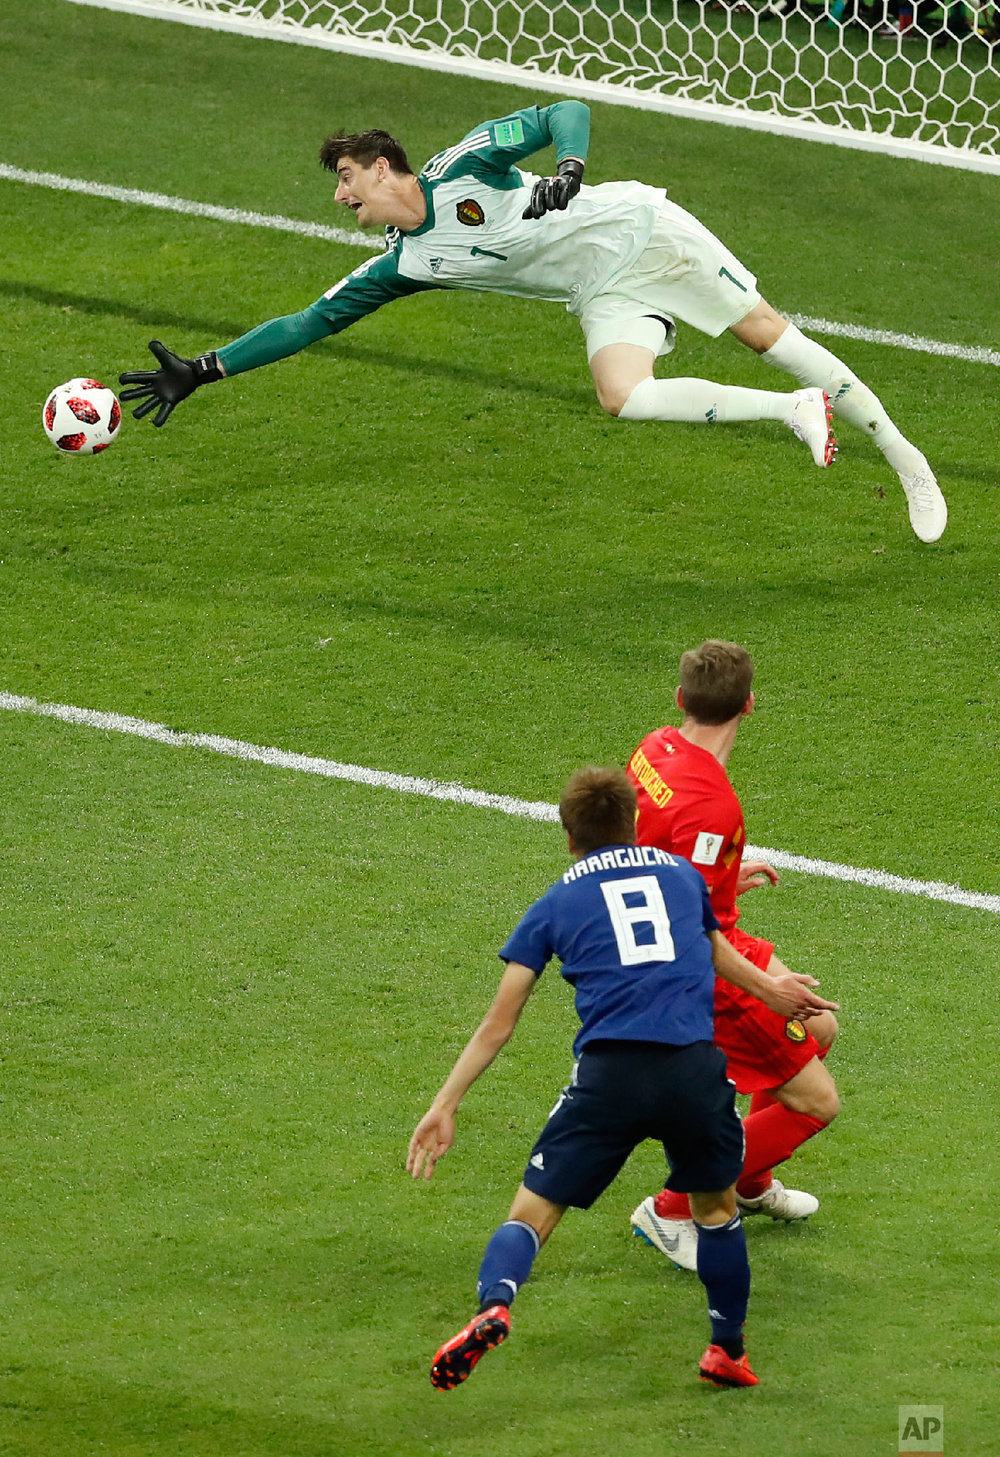 Japan's Genki Haraguchi, bottom left, scores his first side goal during the round of 16 match between Belgium and Japan at the 2018 soccer World Cup in the Rostov Arena, in Rostov-on-Don, Russia, Monday, July 2, 2018. (AP Photo/Hassan Ammar)